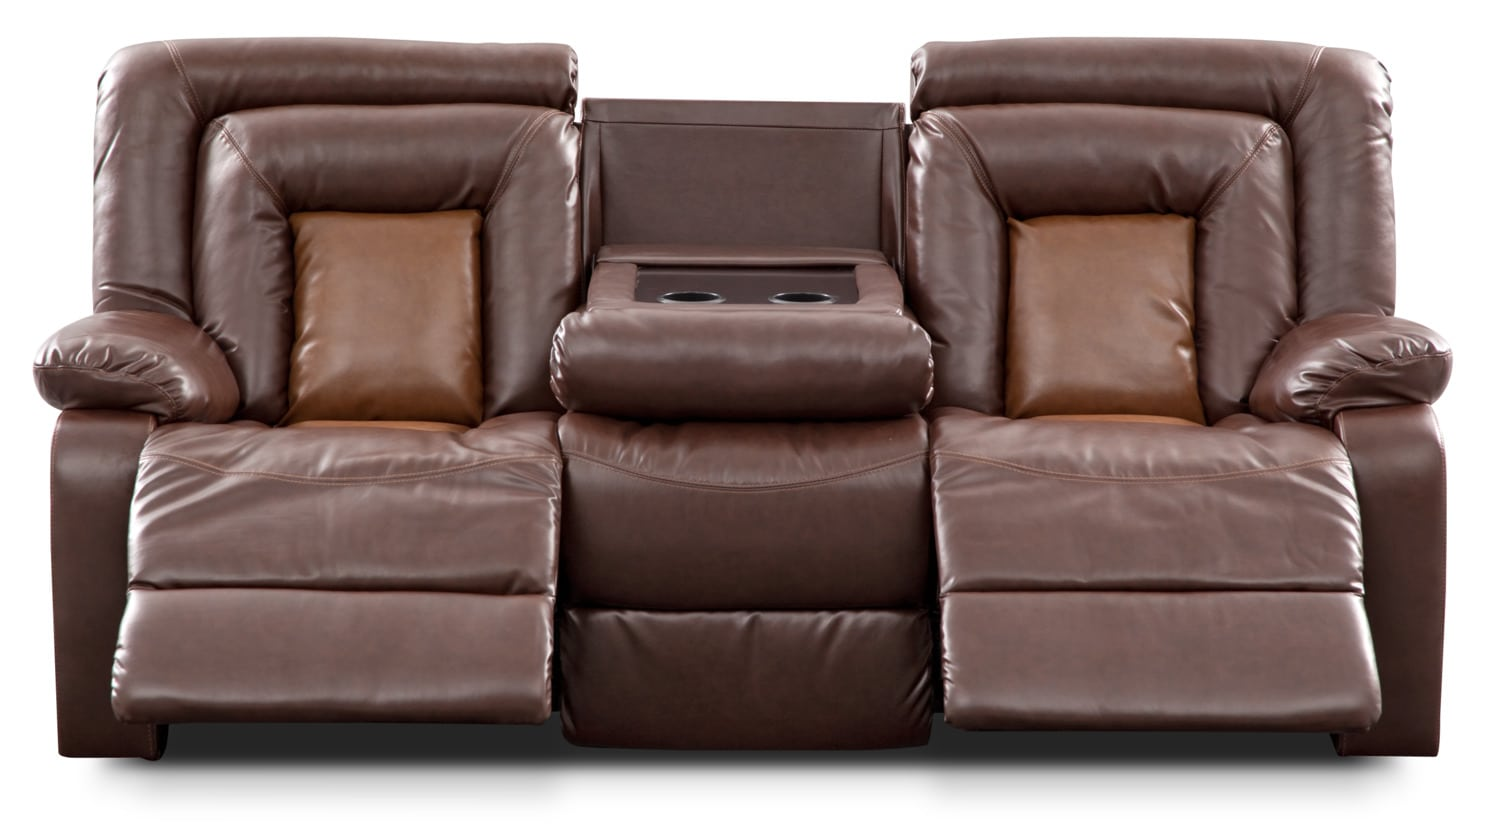 Mustang DualReclining Sofa with Console Brown Value City